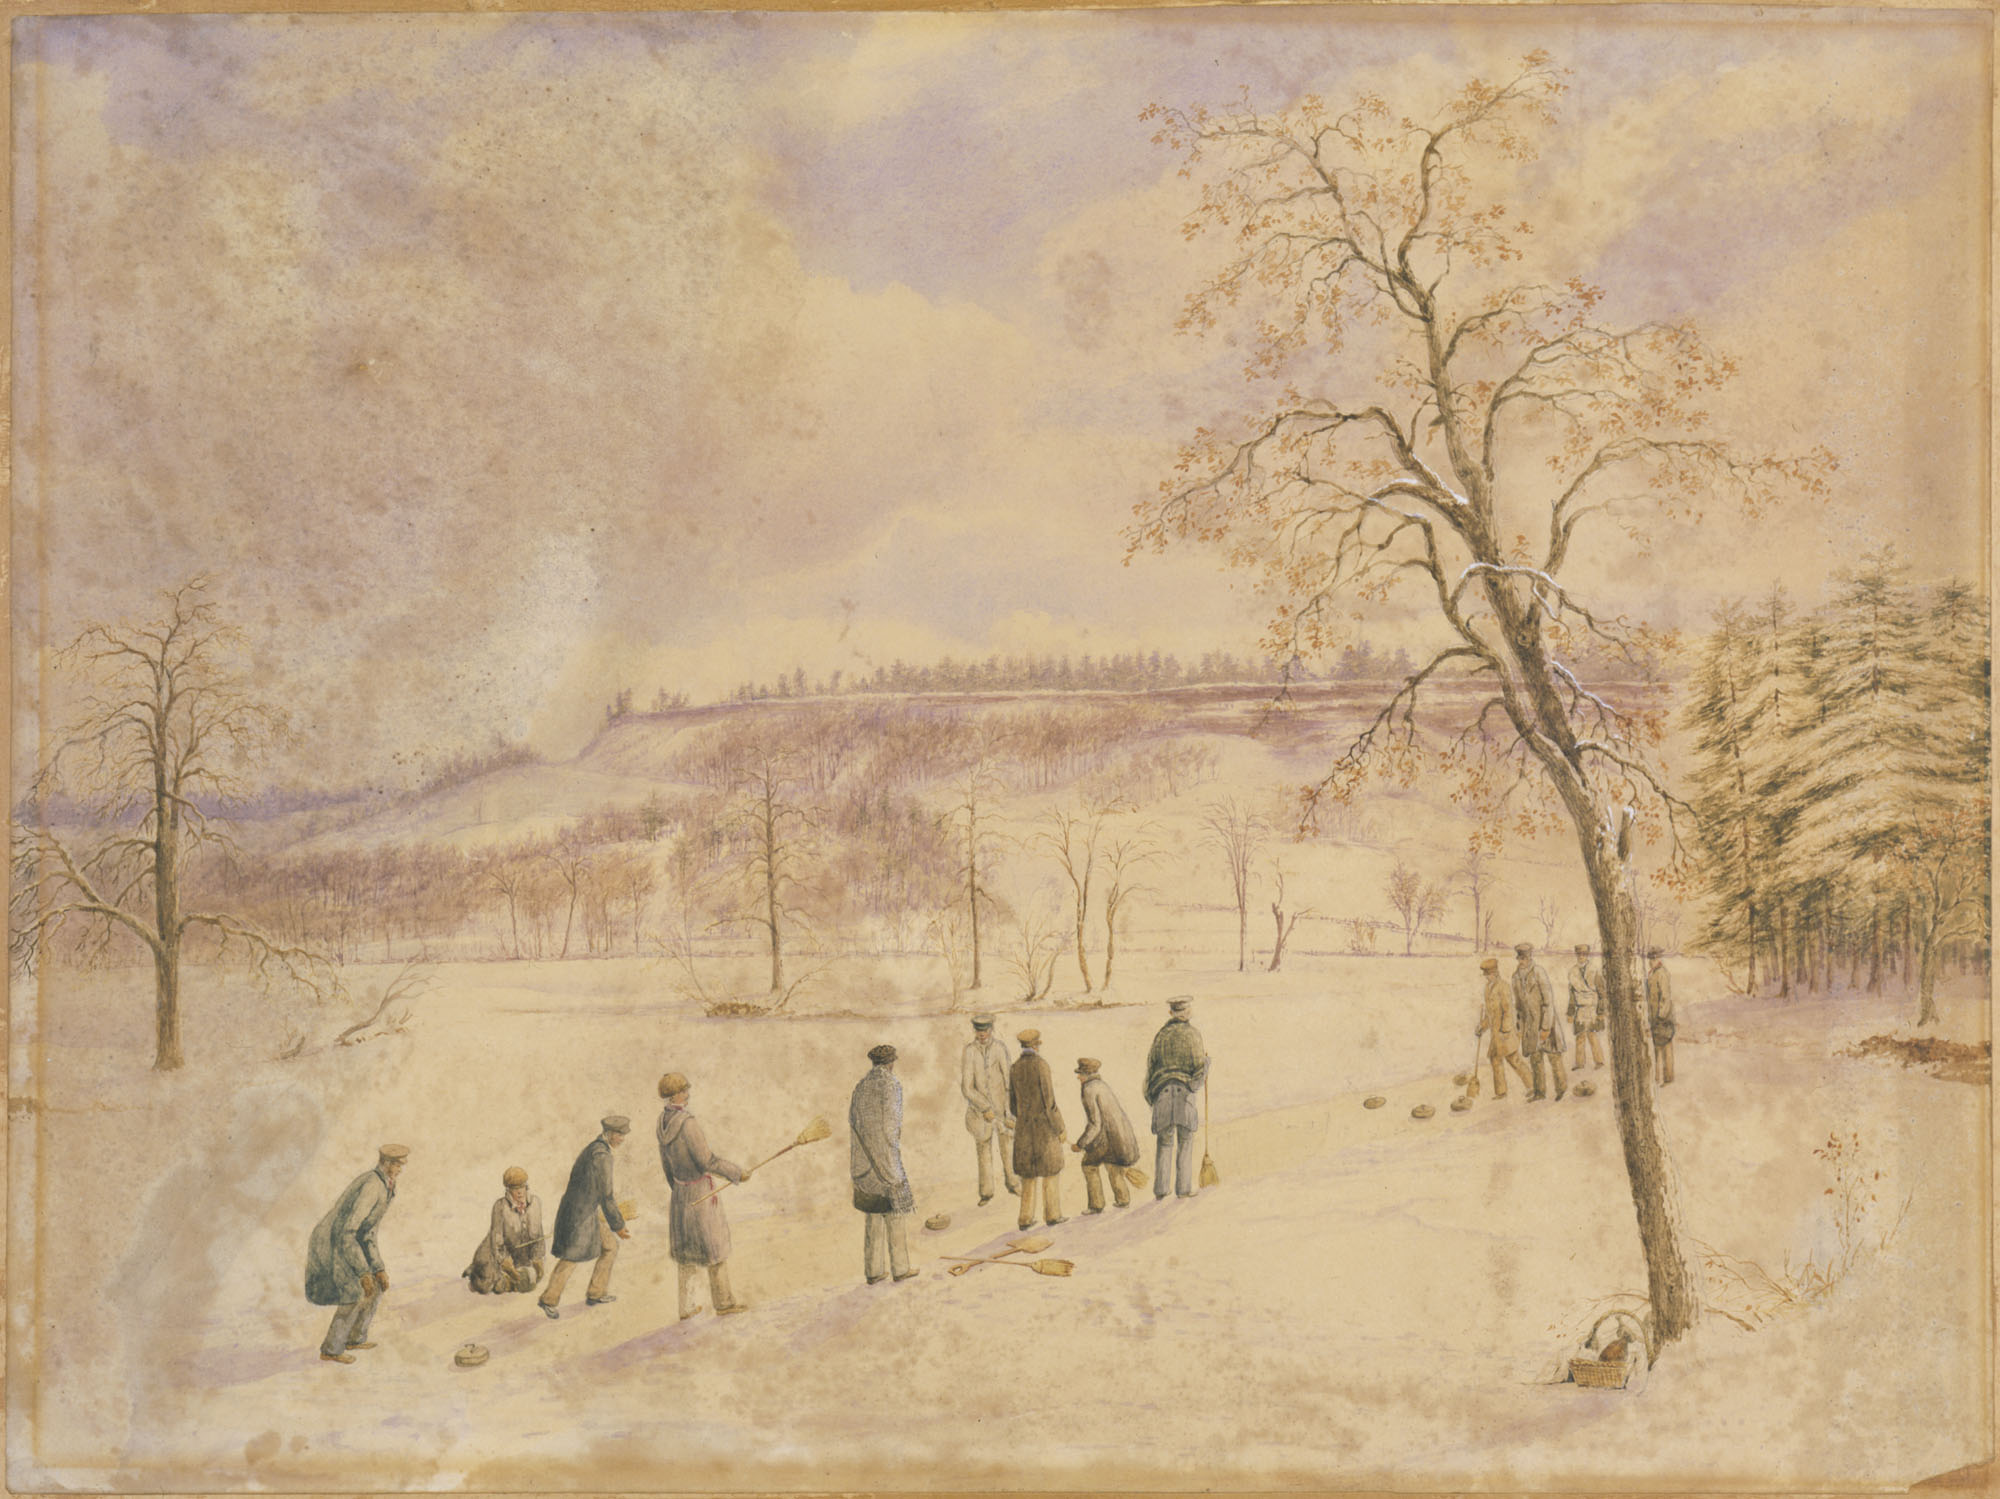 Aquarelle intitulée CURLING IN HIGH PARK, TORONTO, 1836